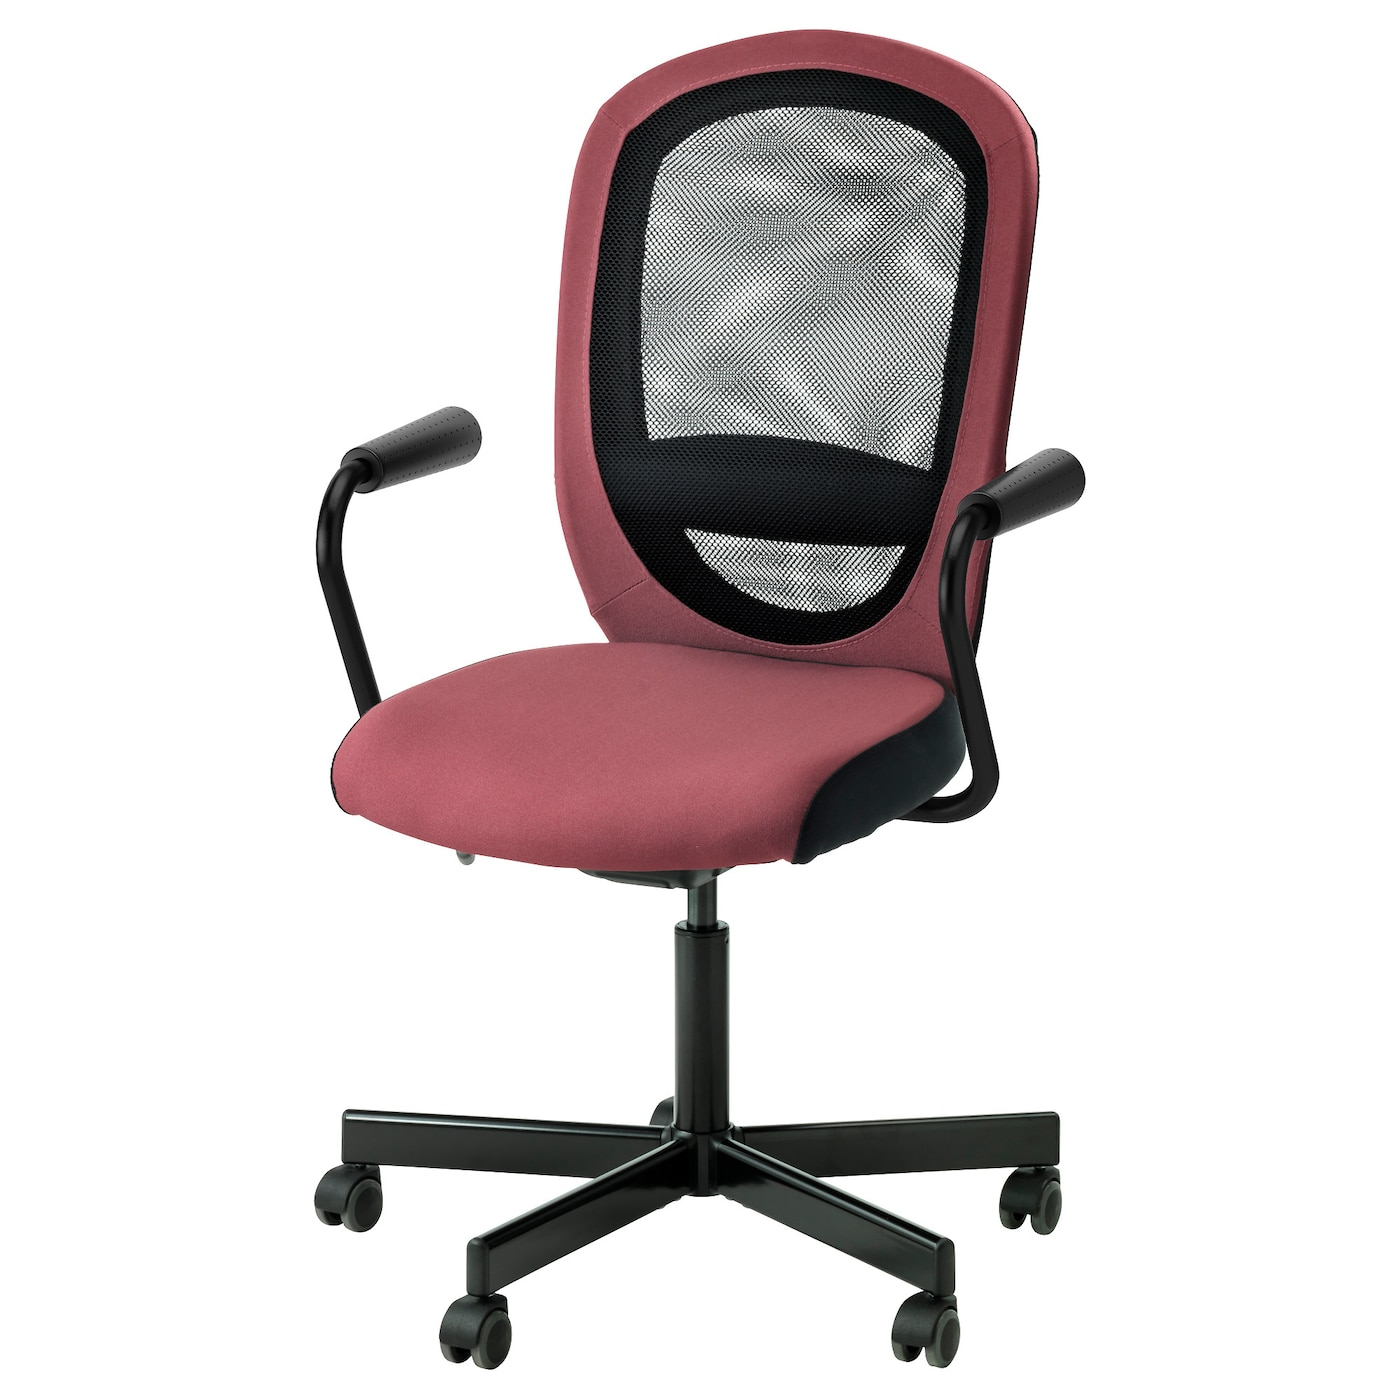 IKEA FLINTAN/NOMINELL swivel chair with armrests Relieves strain on your arms and shoulders.